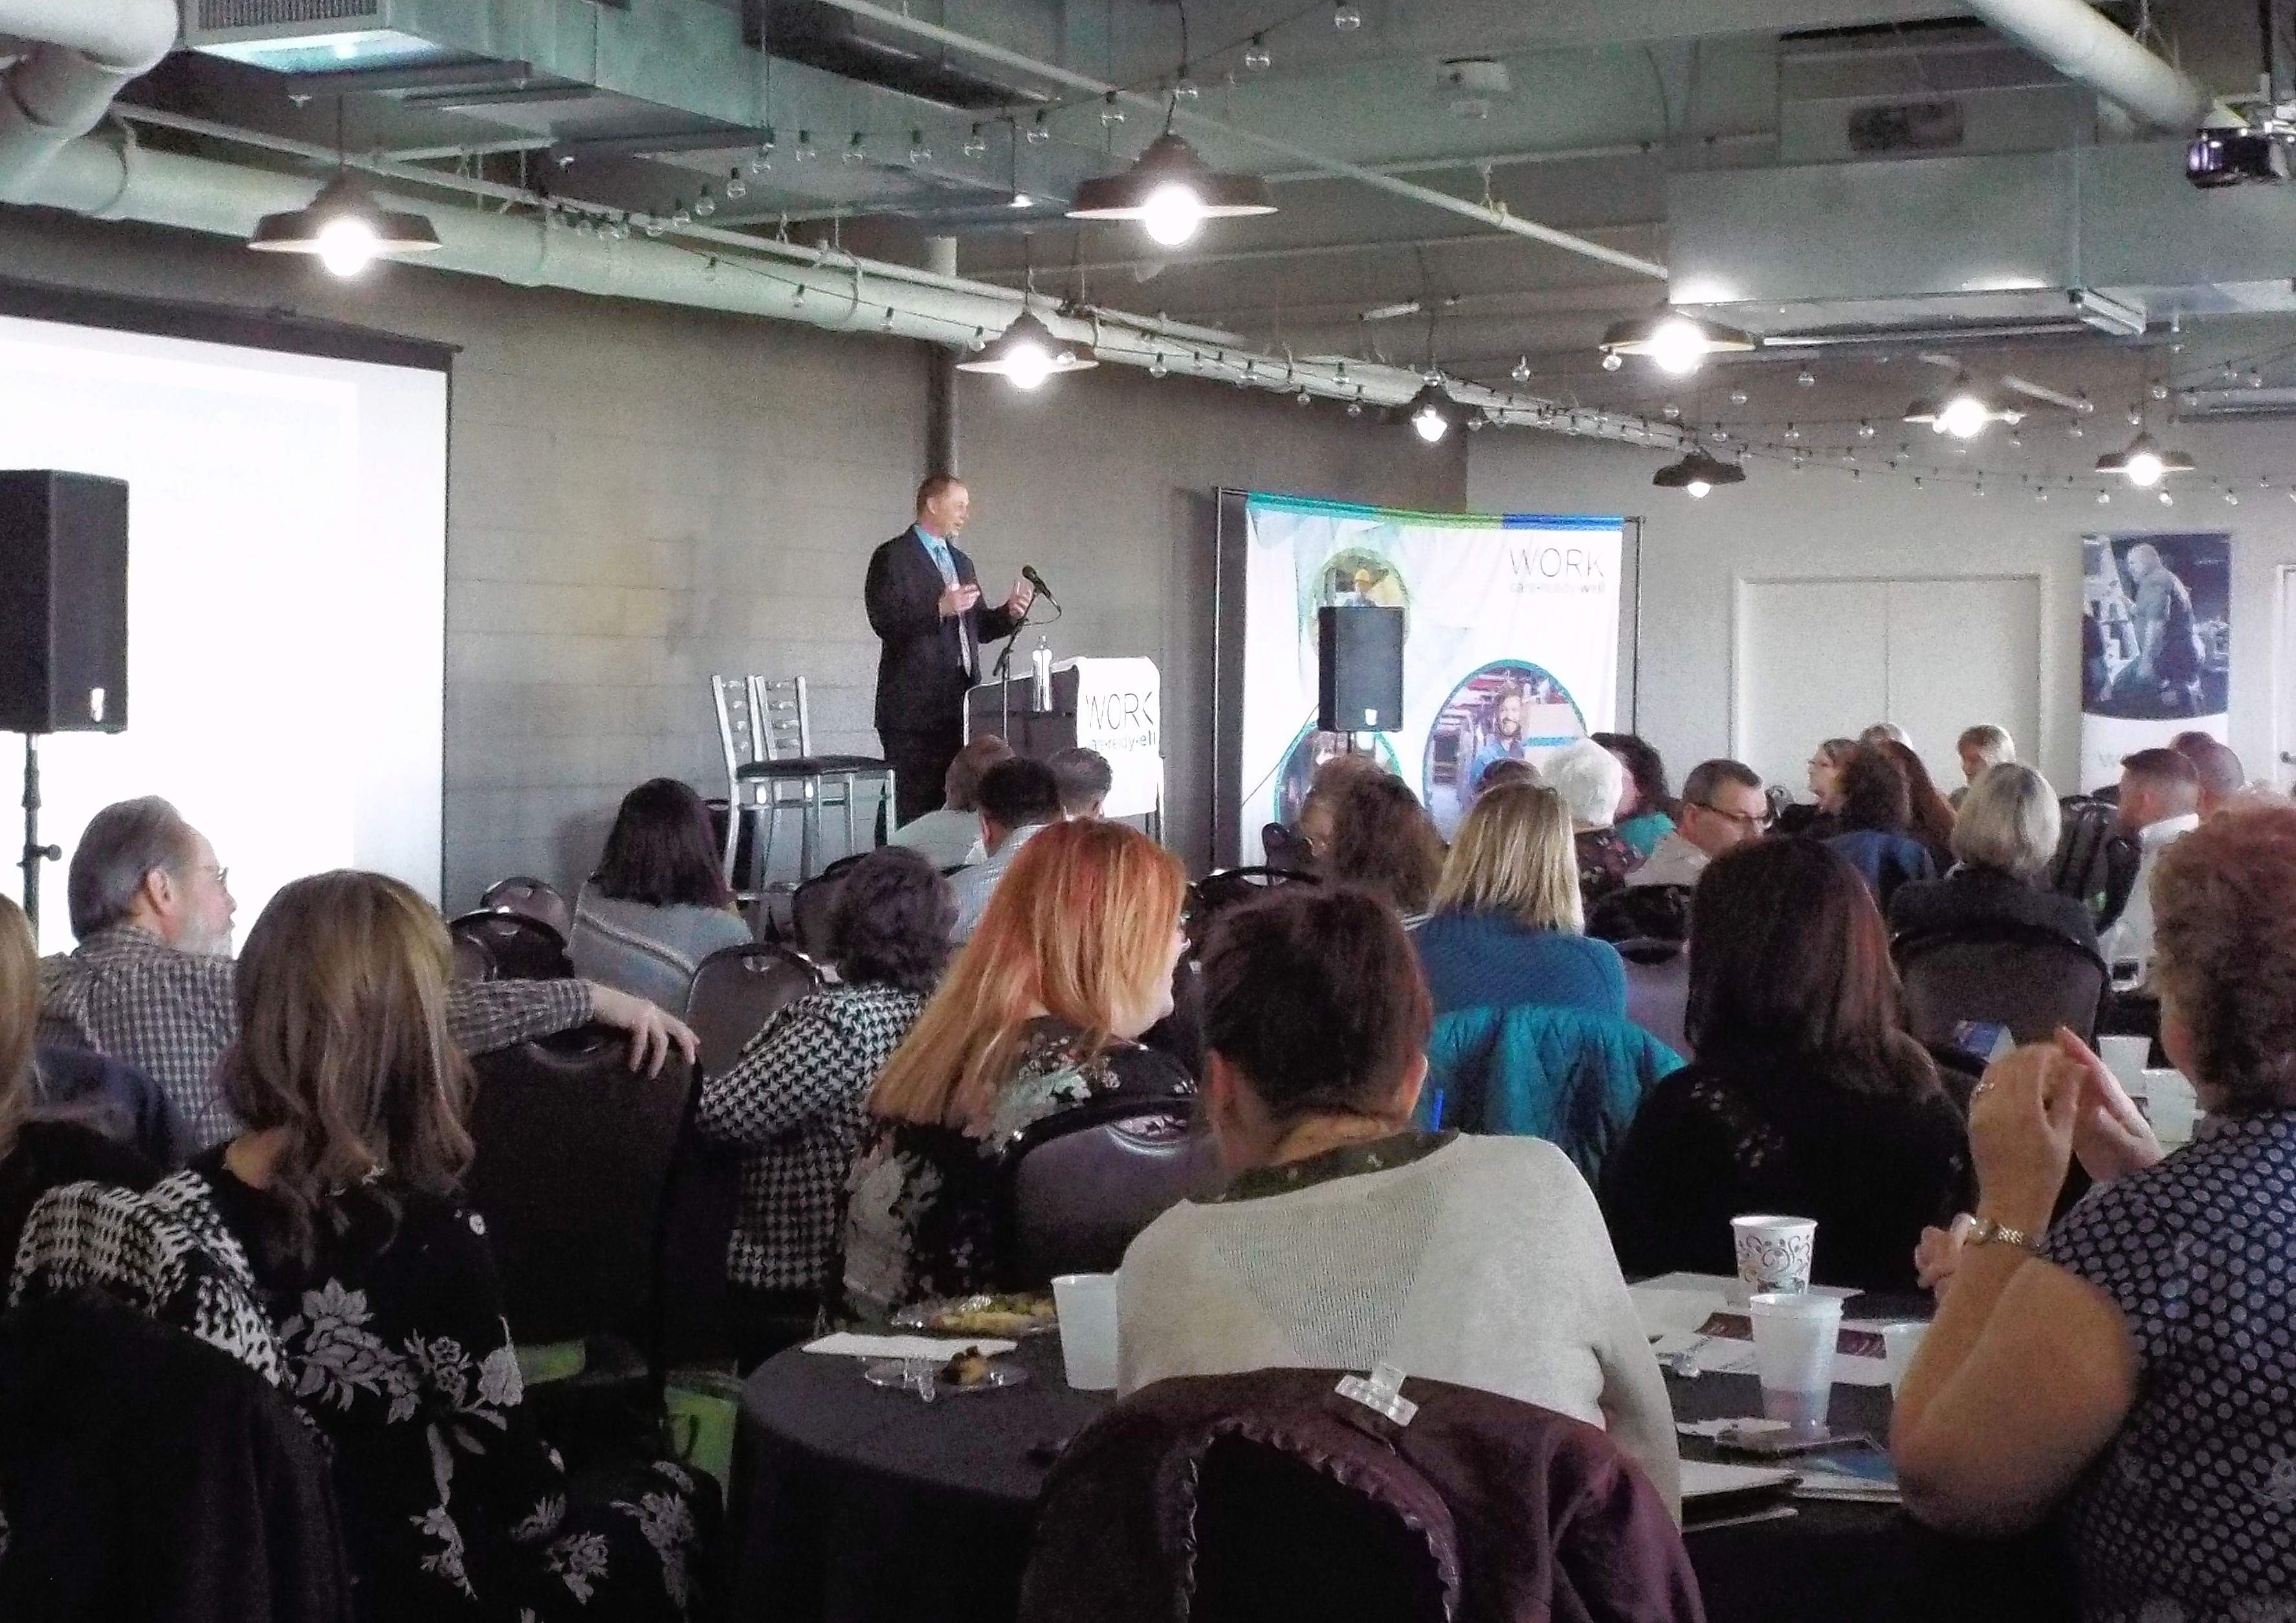 Shawn Berry wraps up his keynote address at Thursday's SIH-sponsored workers' compensation symposium in the Diamond Club at Rent One Park in Marion.